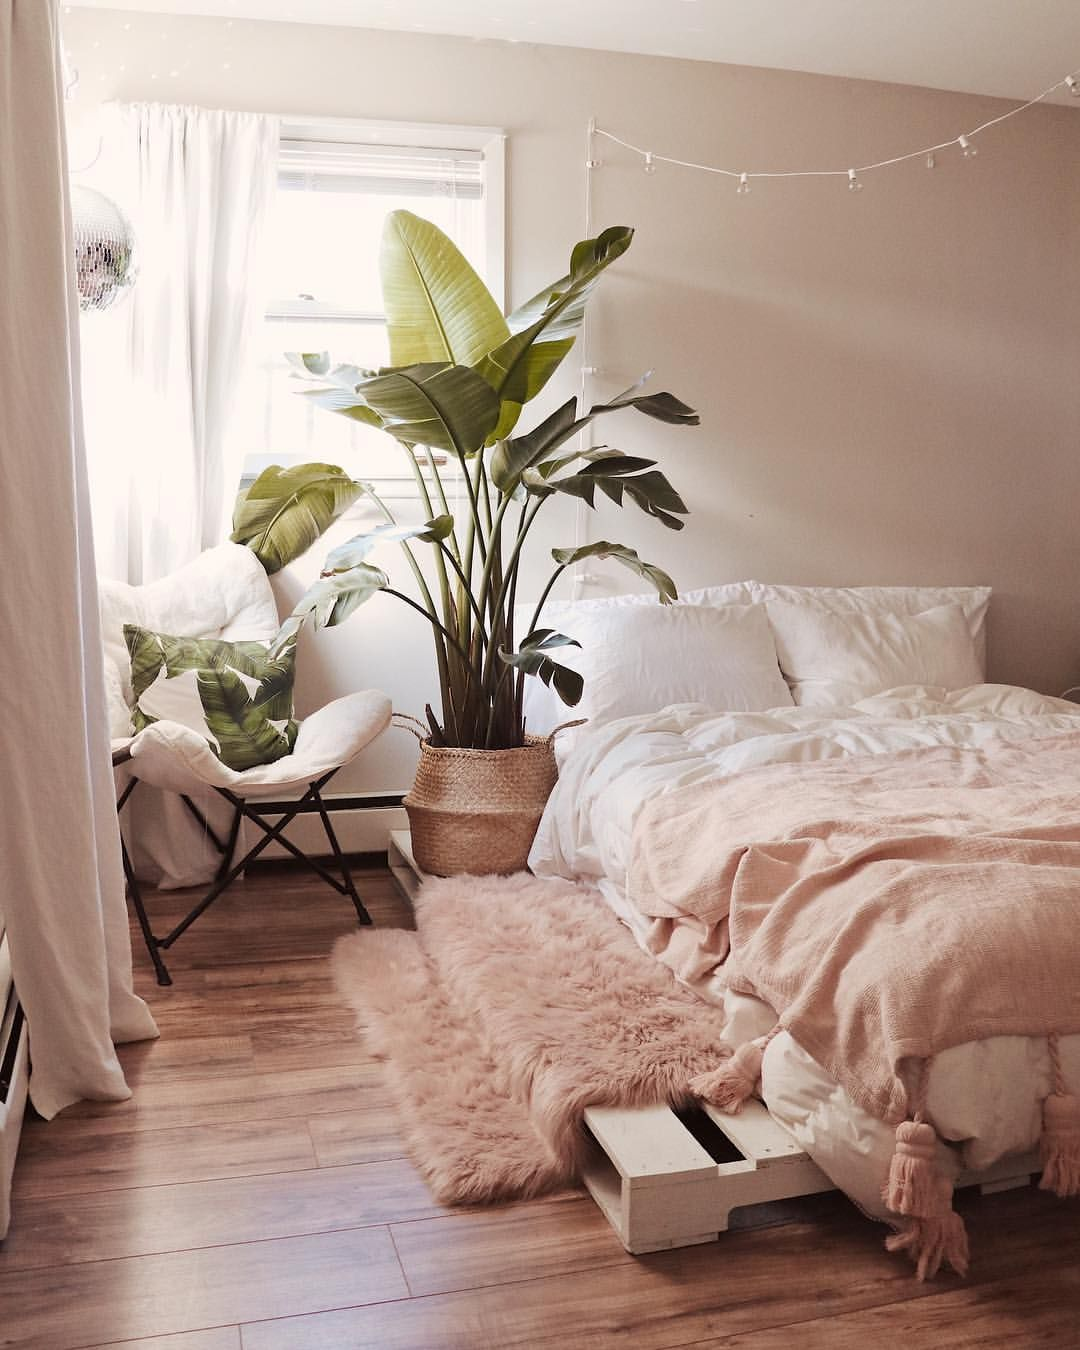 7 Gorgeous Pink Bedrooms That You Can Totally Re-create at Home - heydjangles.com. Botanical and pink boho-chic bedroom. Pink bedroom decor ideas. Image via Insta @celeste.escarcega.